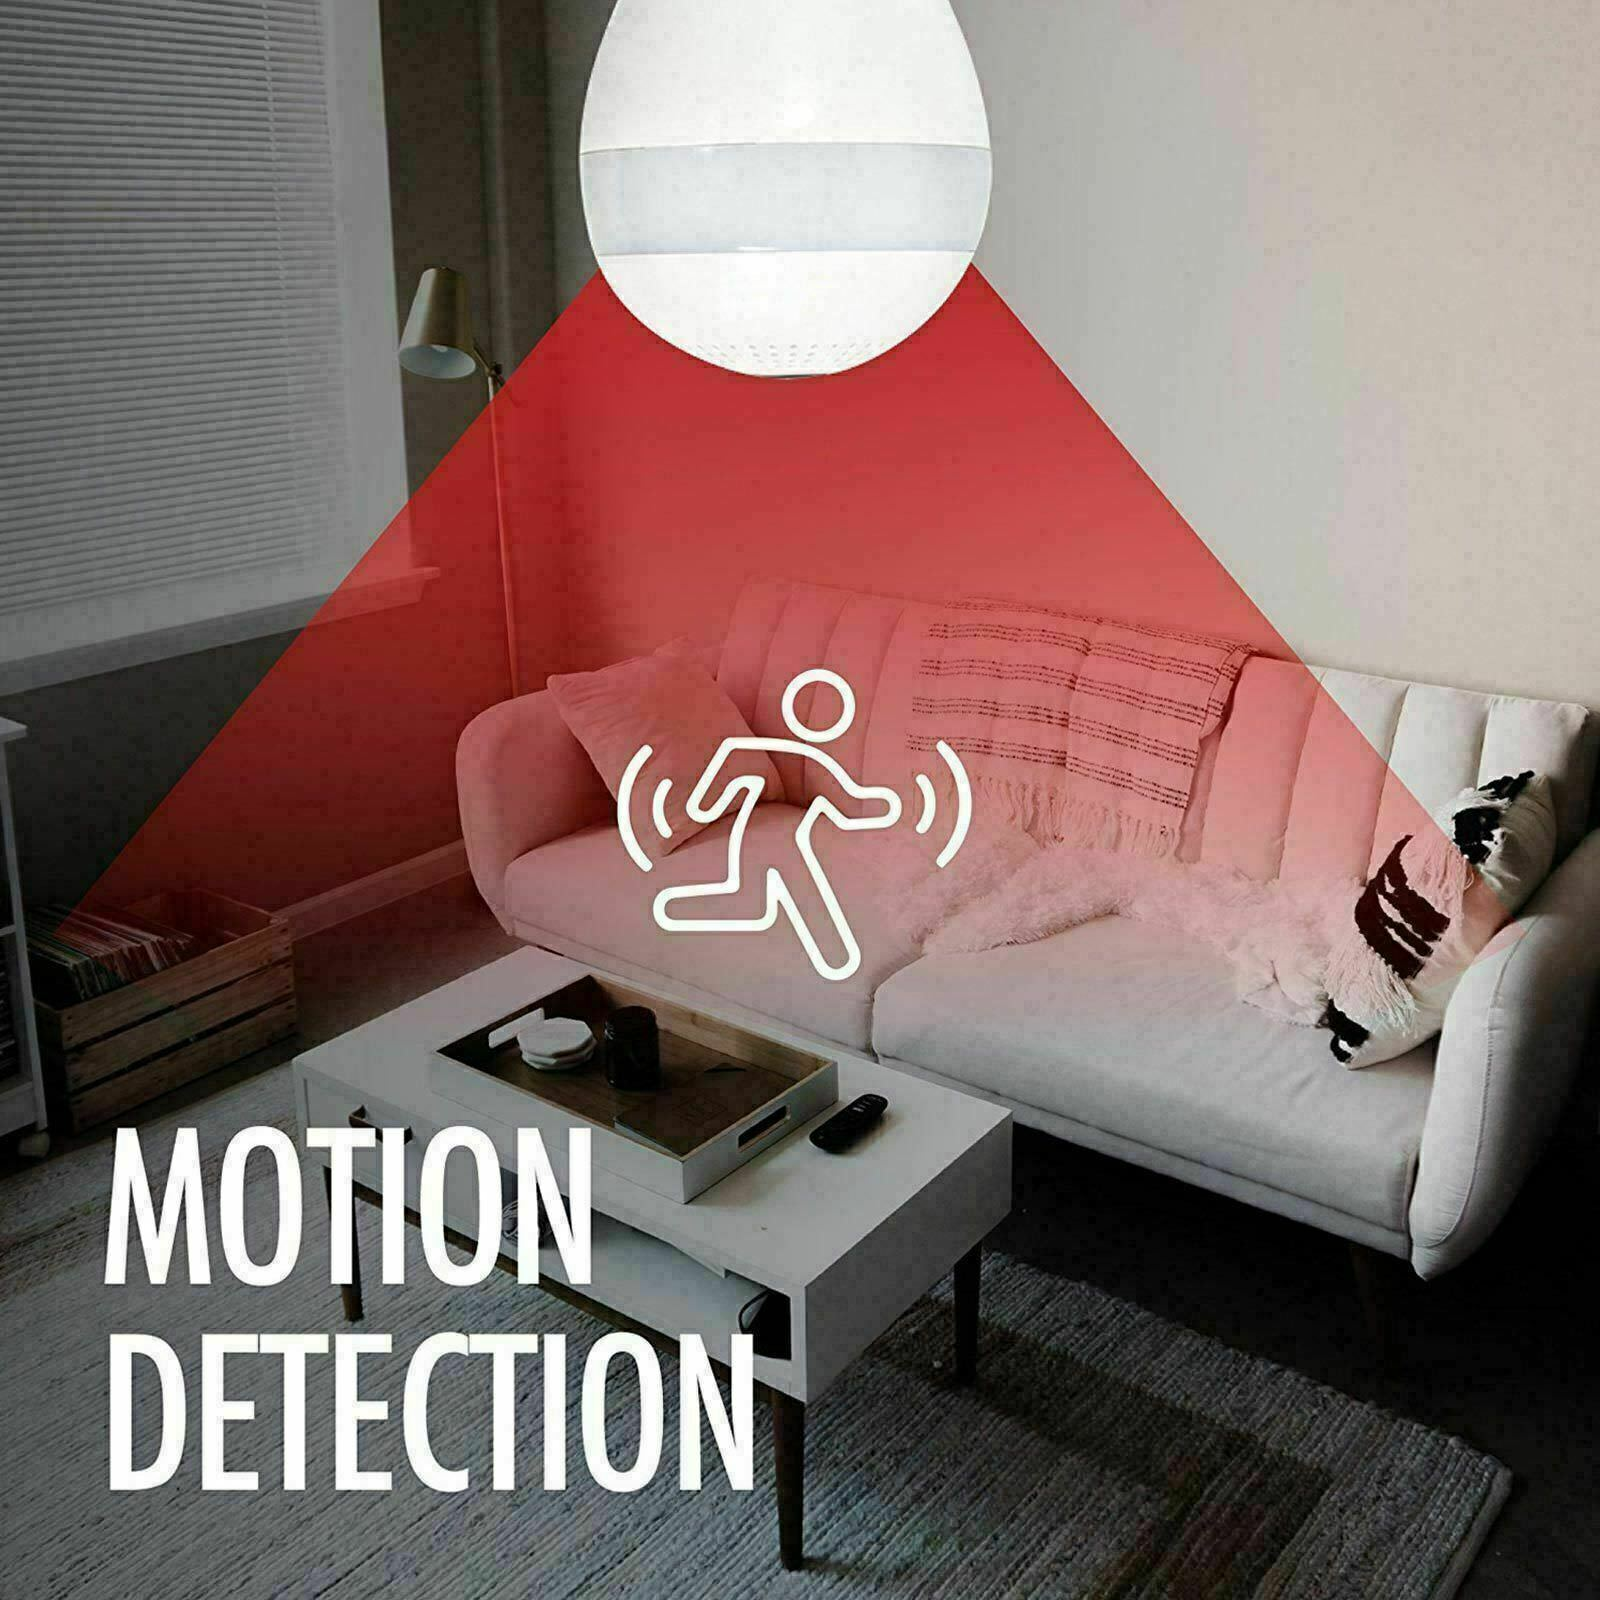 Home Security Lamp